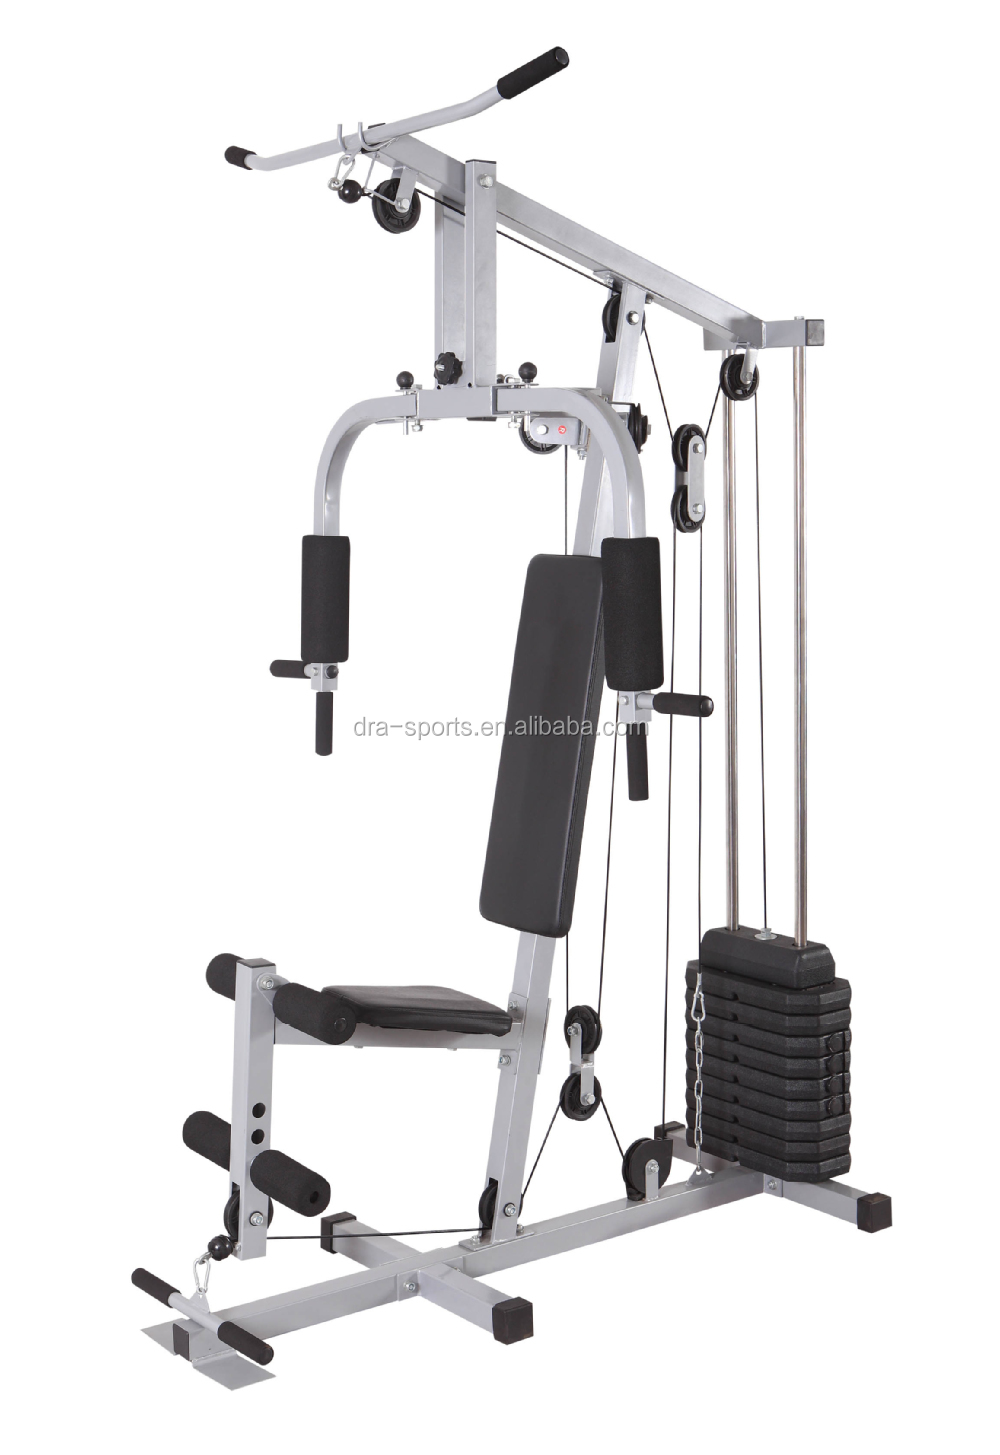 Fitness multi gym tower station for chest press exercising